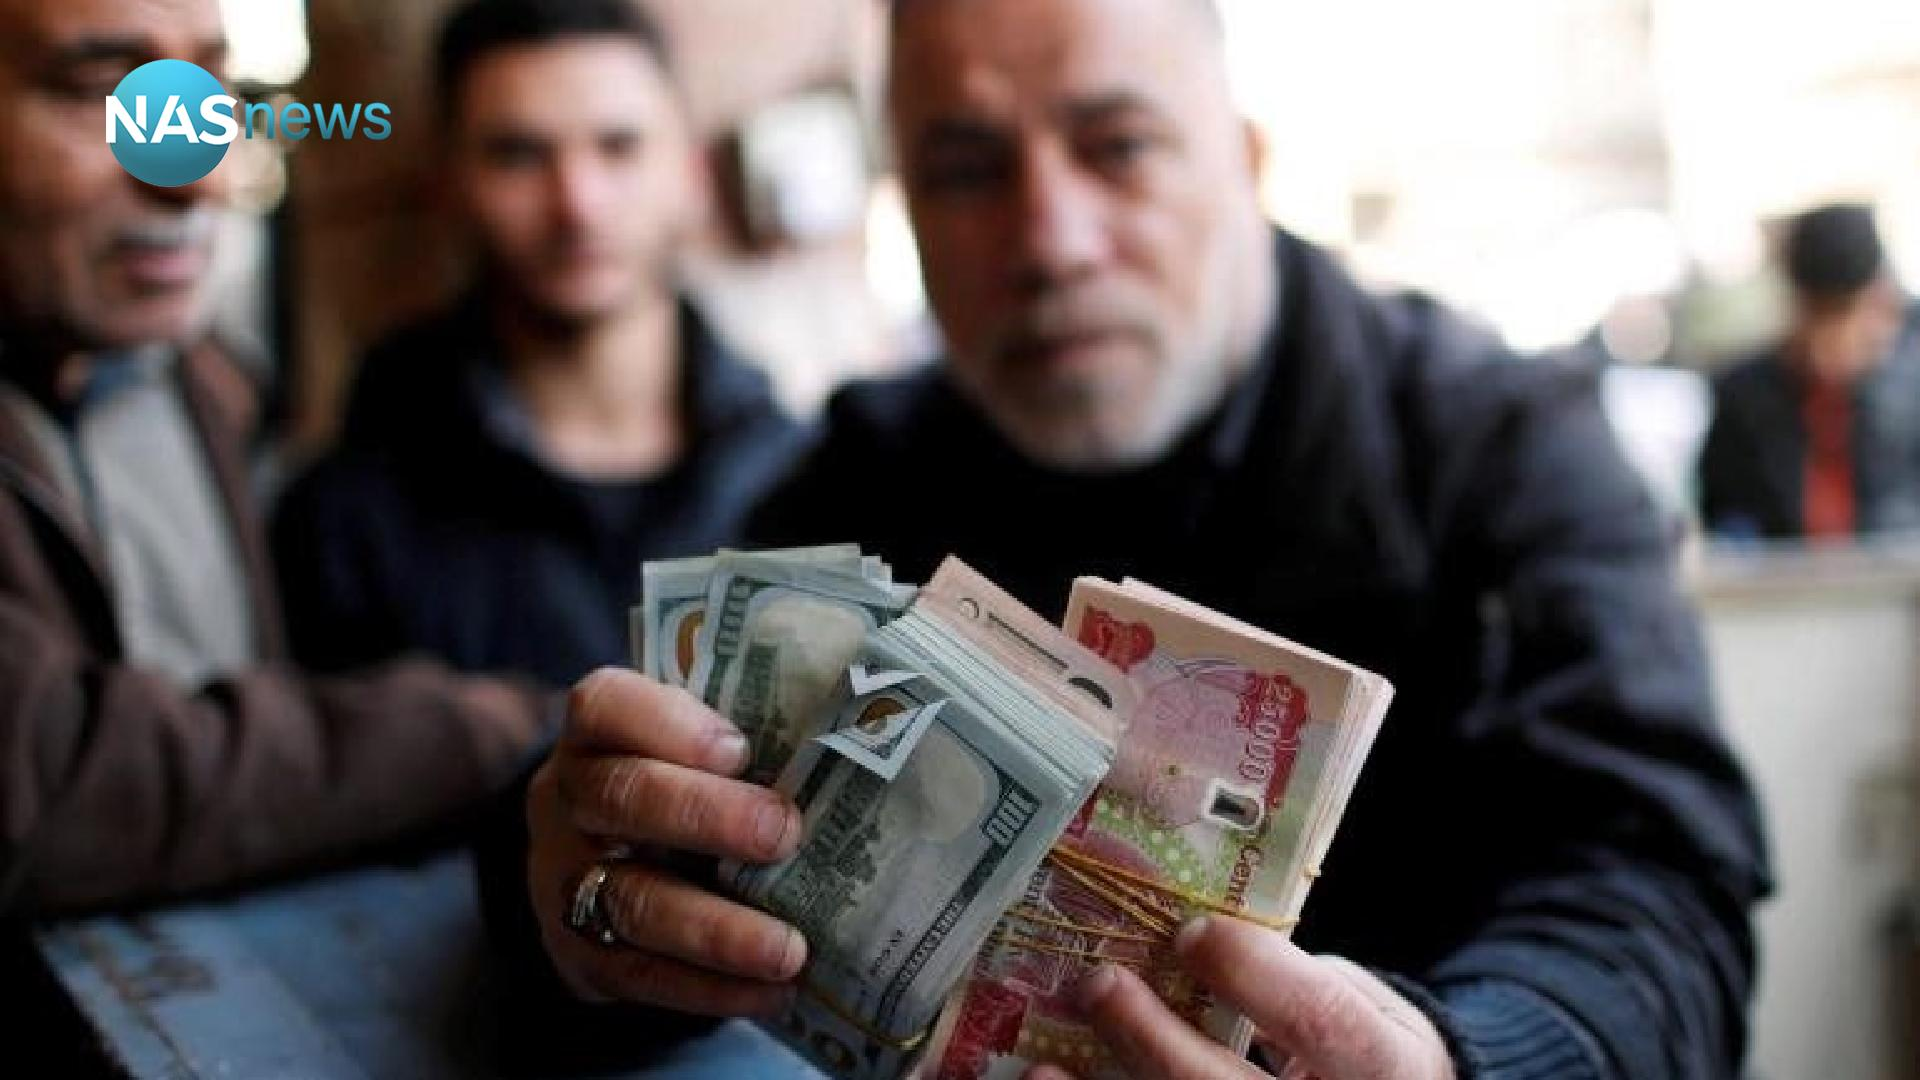 A slight decrease in the exchange rates of the dollar in the Iraqi market